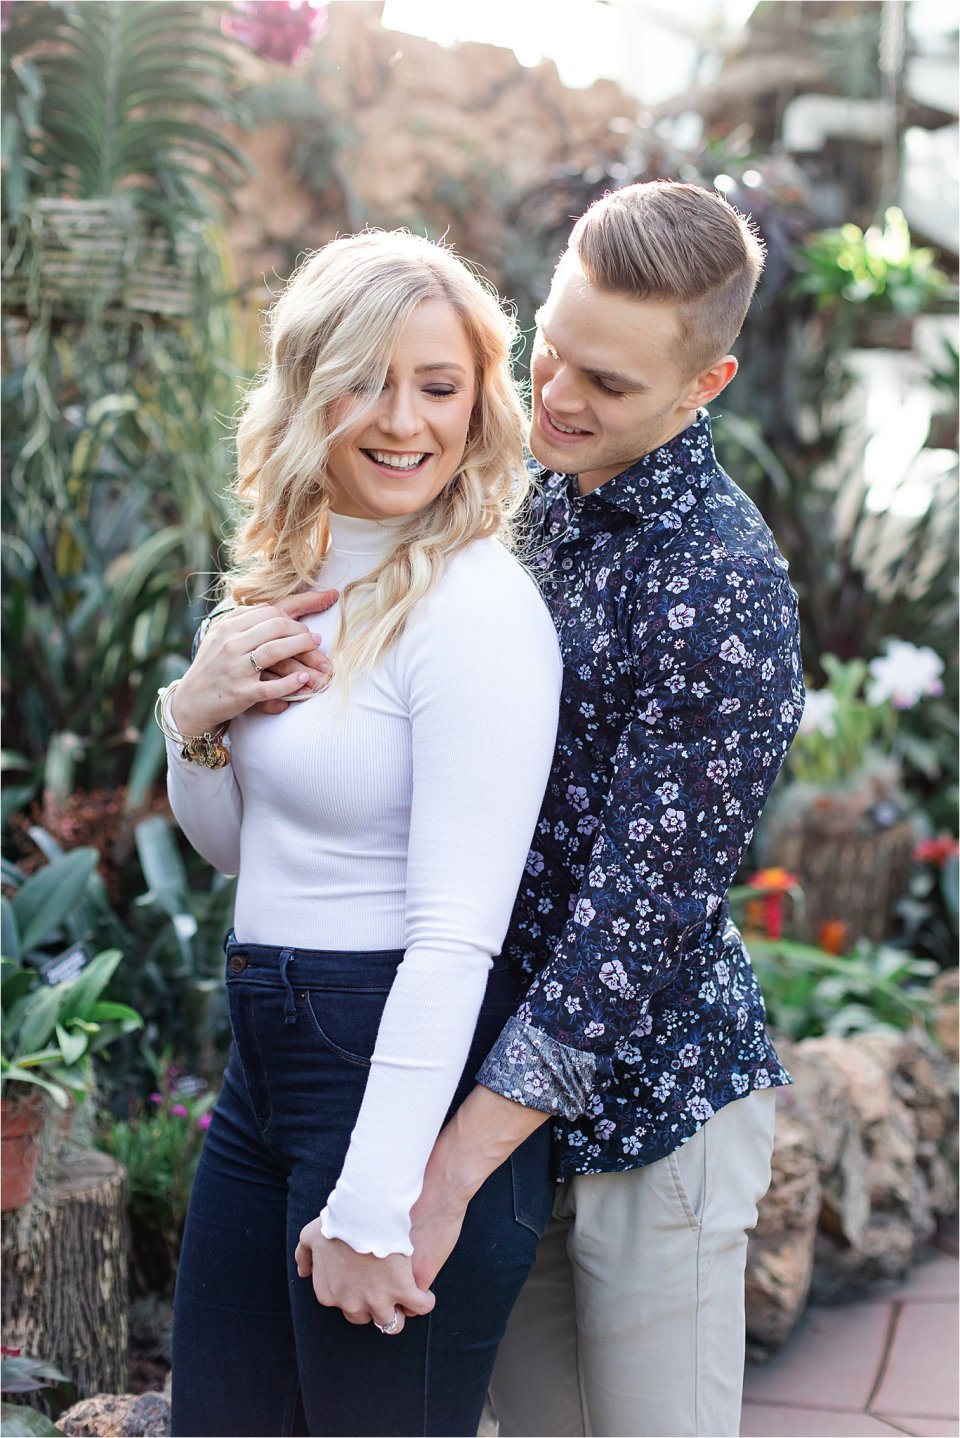 Engagement photography at Lincoln Park Conservatory in Chicago